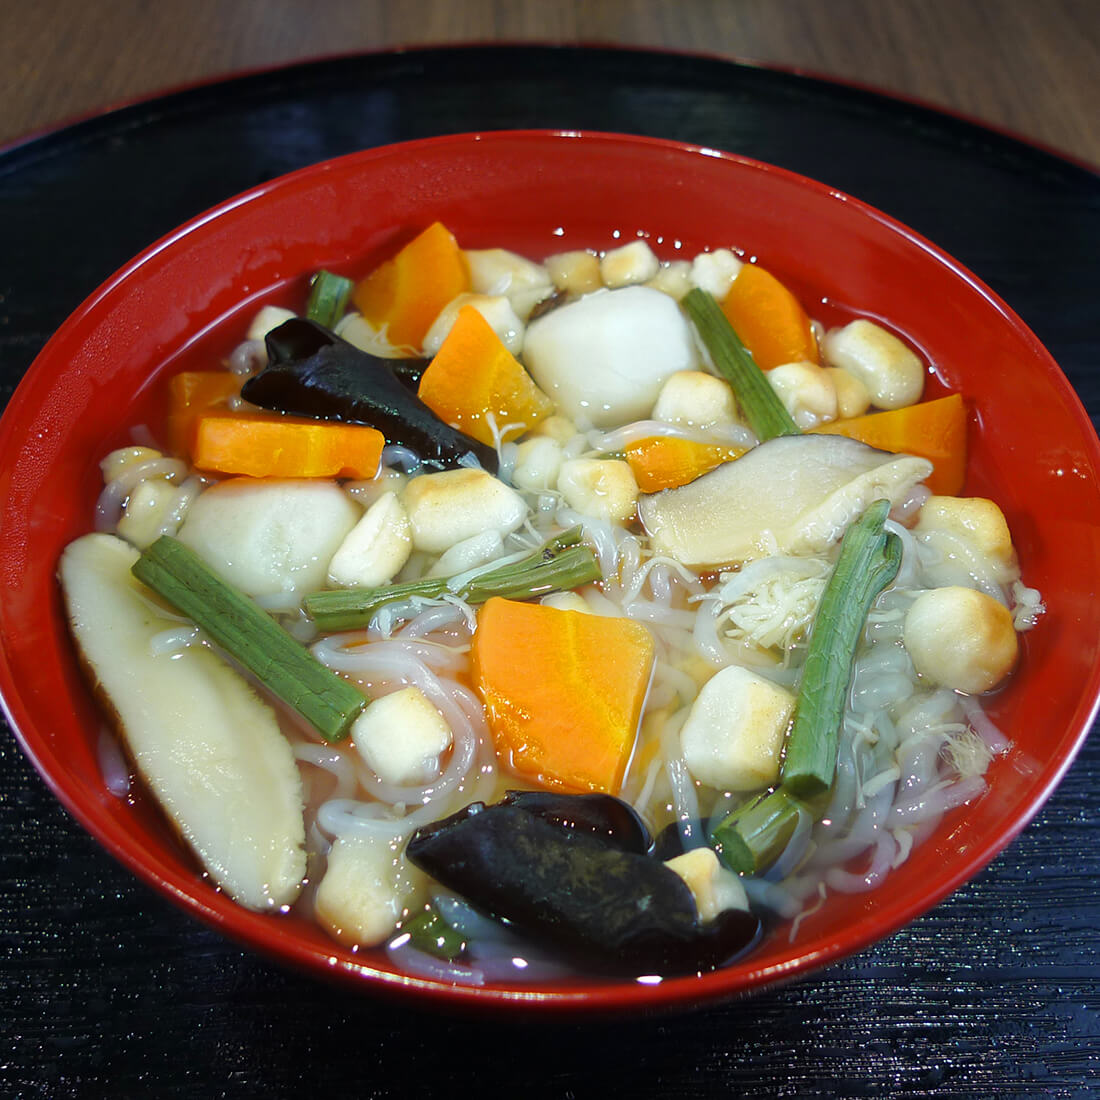 Kozuyu, Umami rich soup with scallop adductor and vegetables